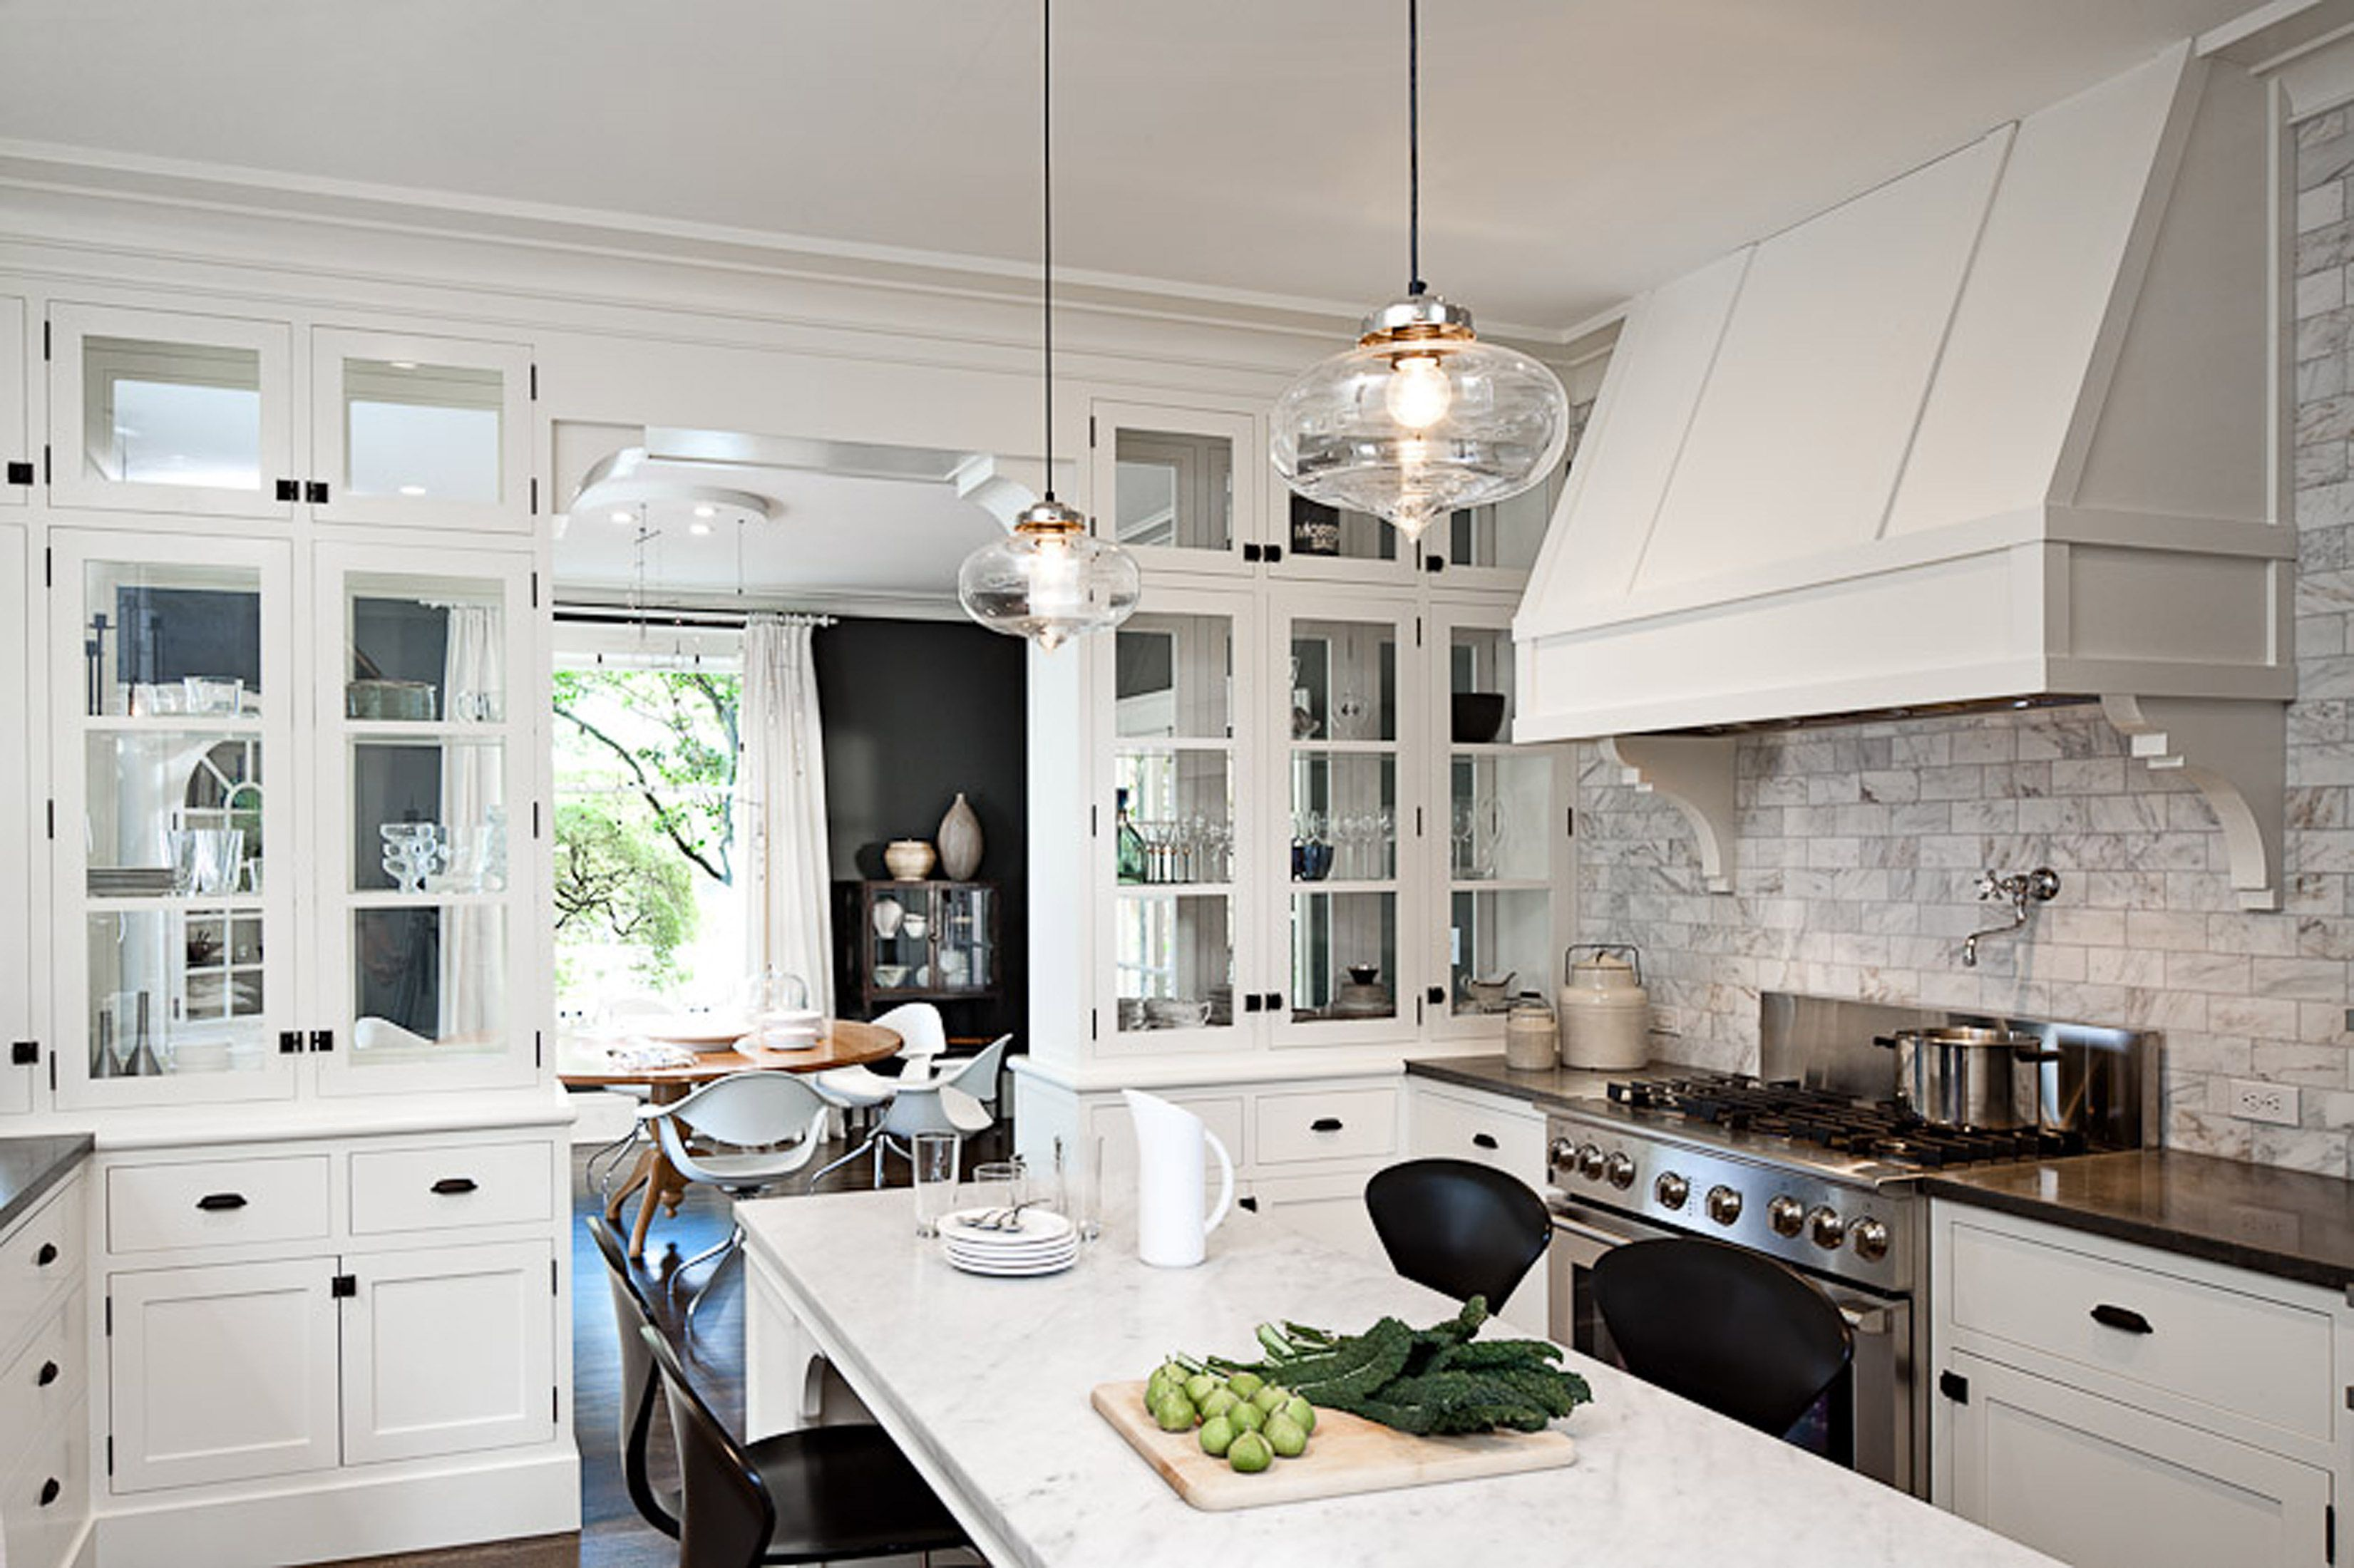 Kitchen Lighting Pendants Brookside Kitchen Lighting Pendants Smallhouseideacom